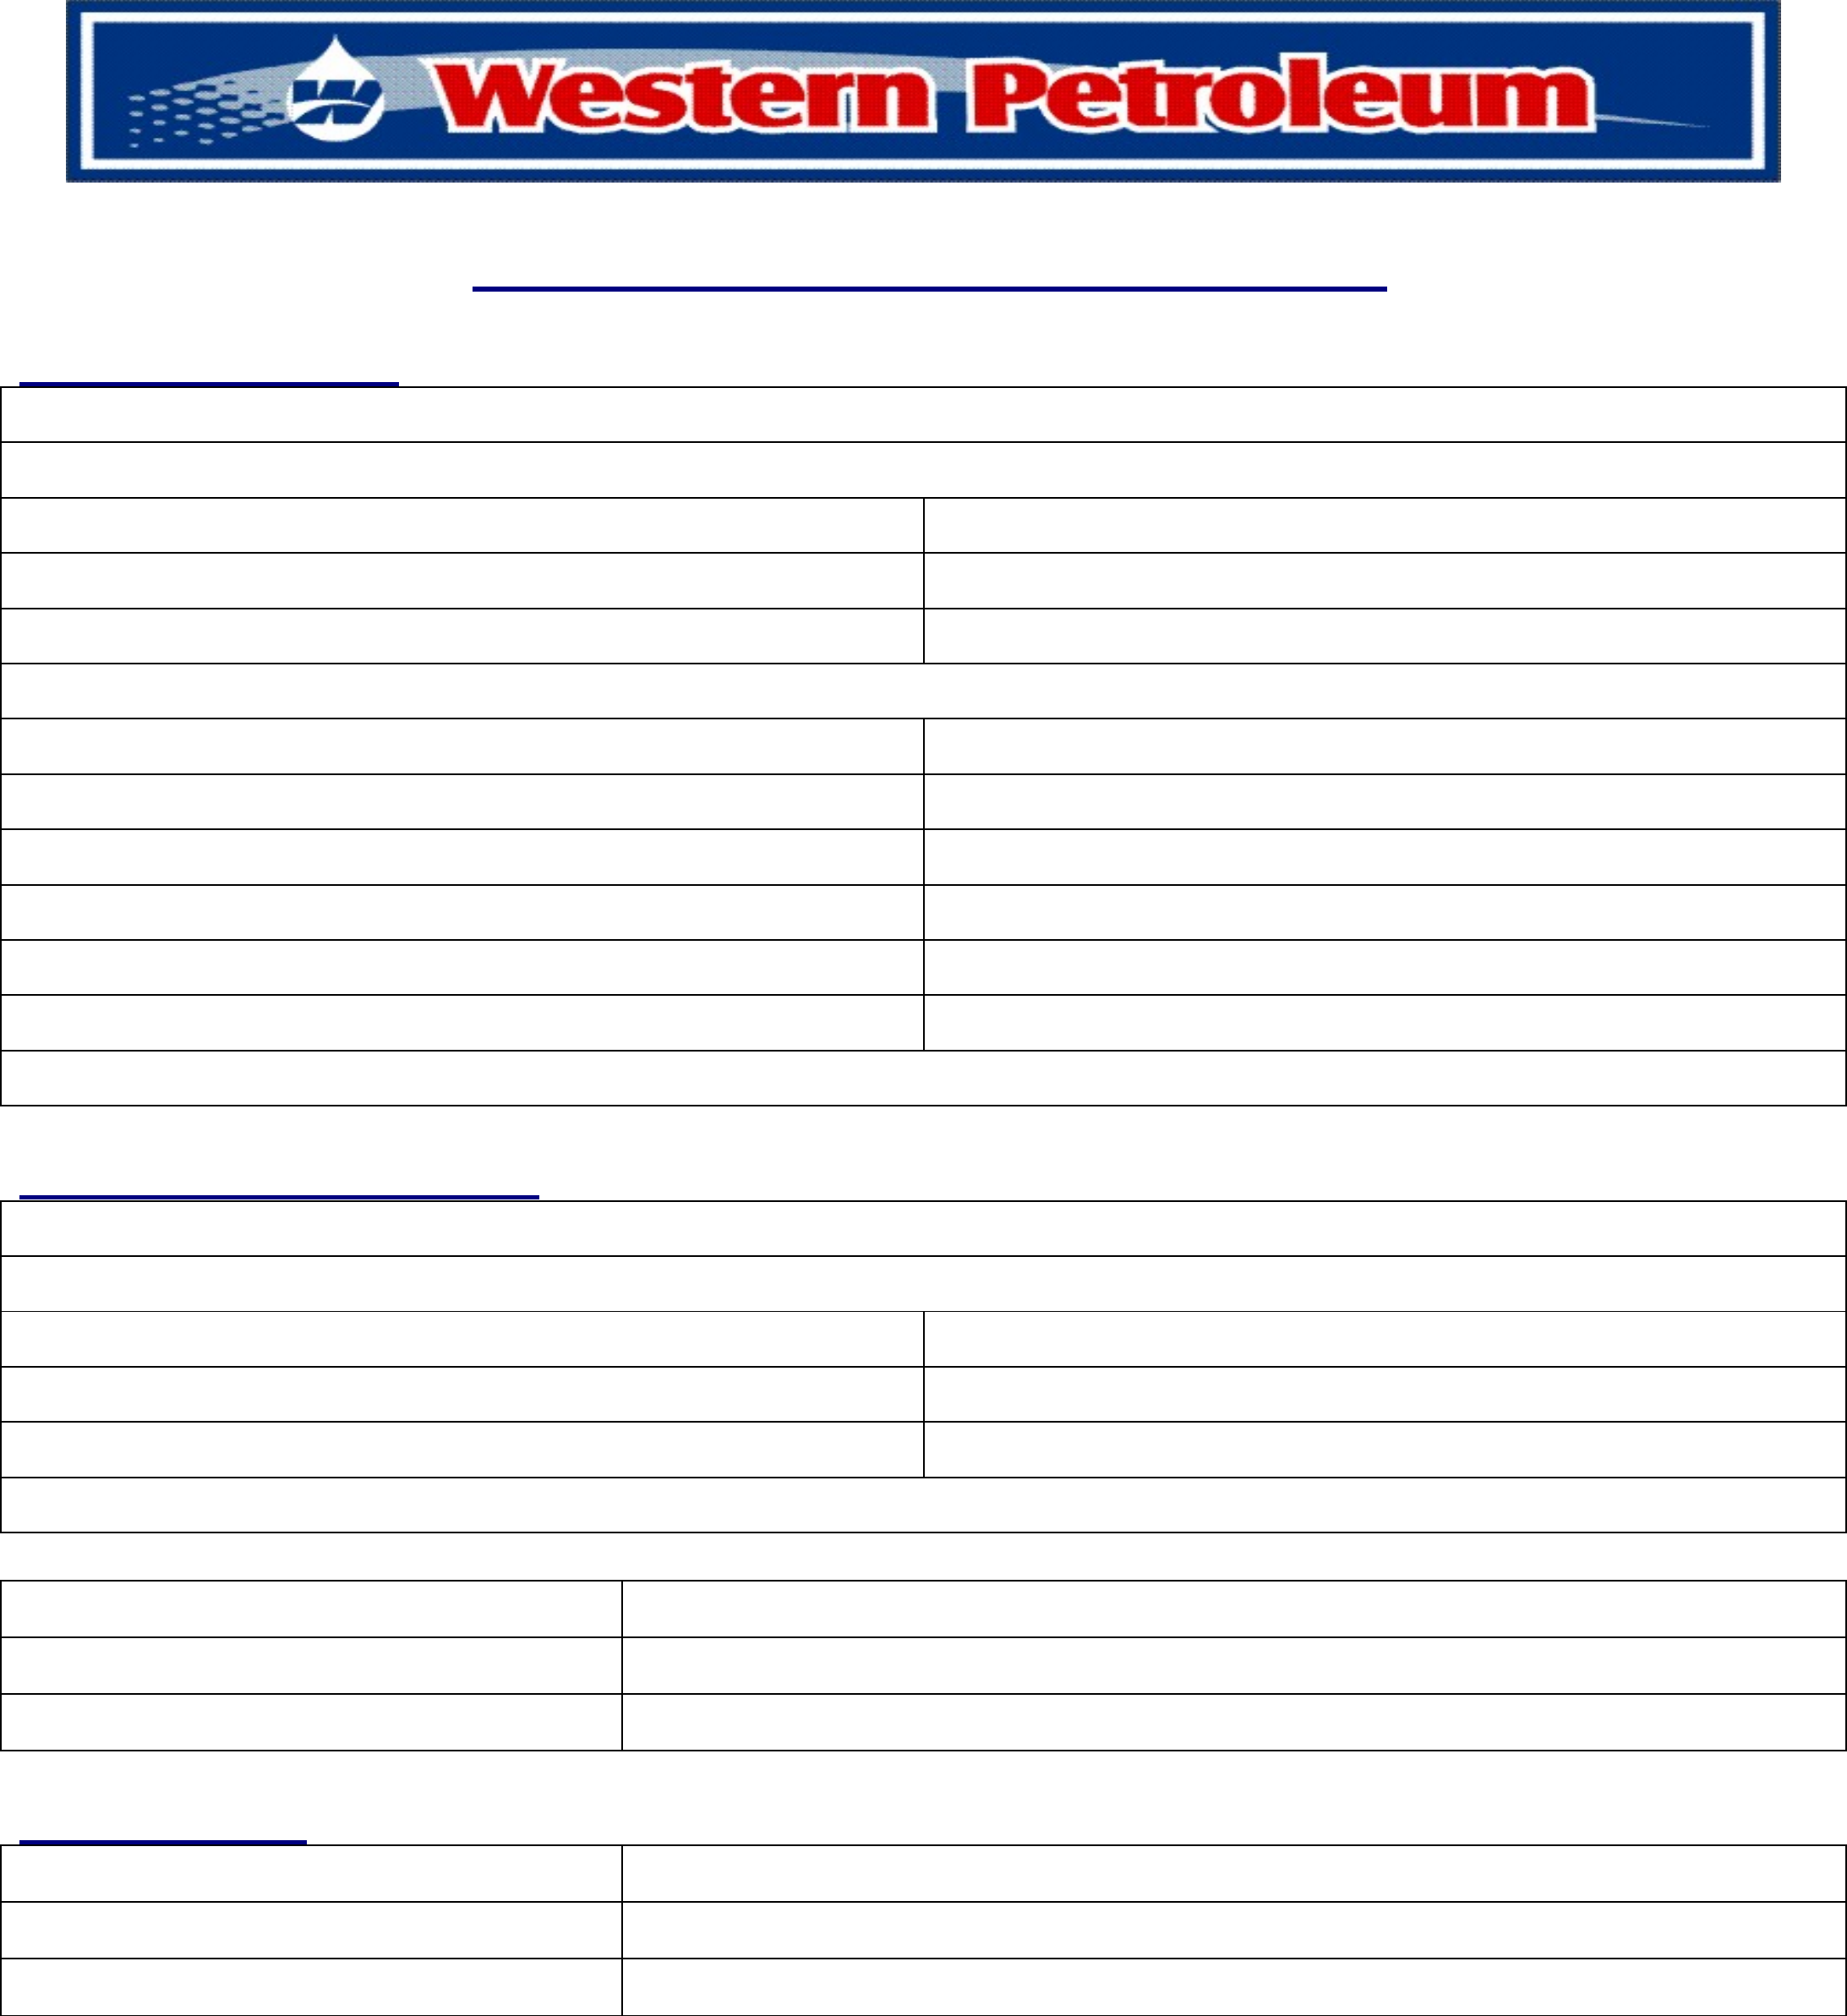 personal credit application form western petroleum free download